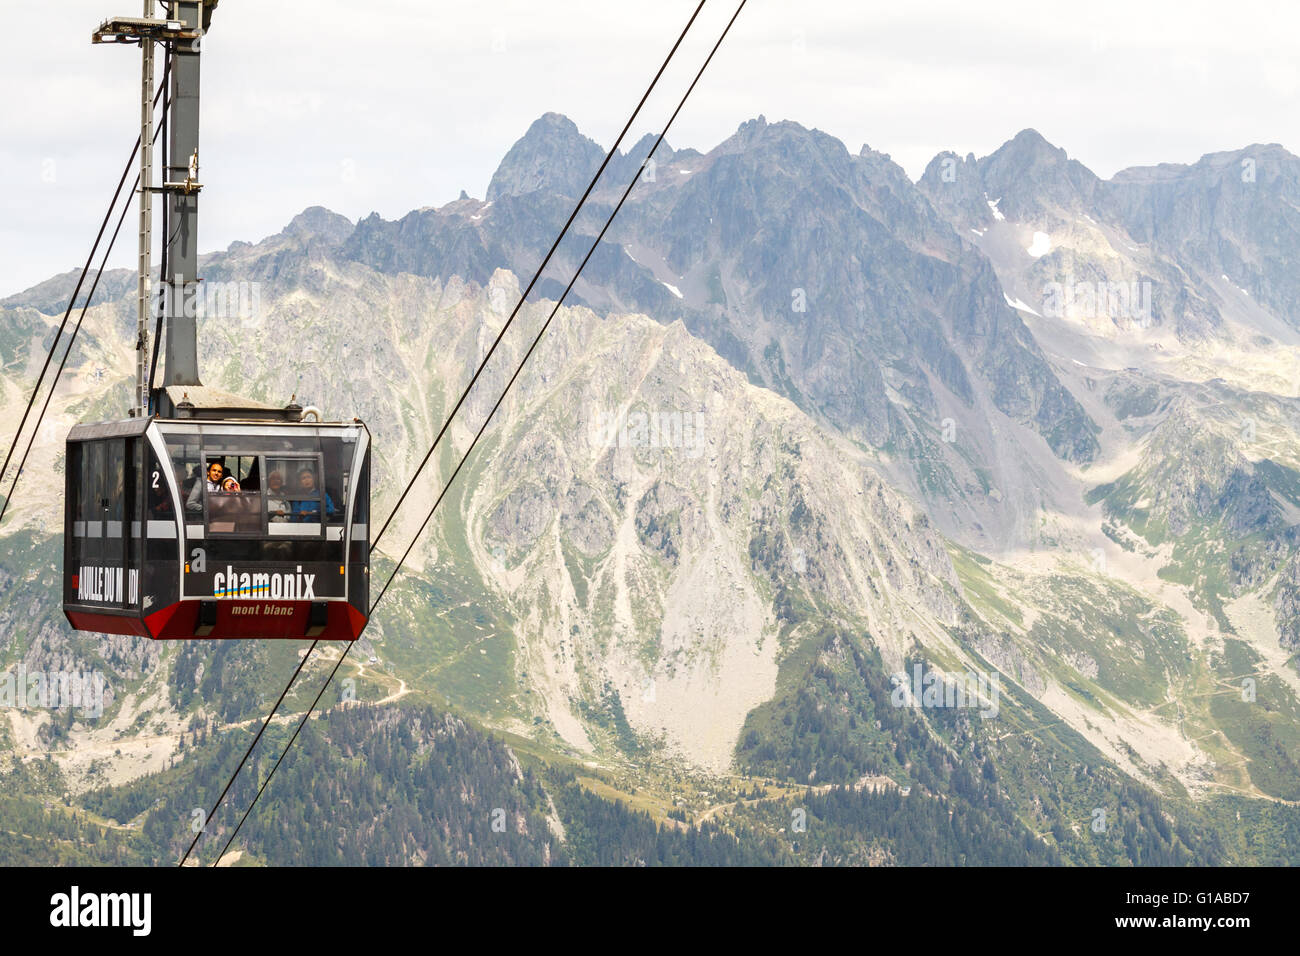 people in cable car/ lift from Chamonix to Aiguille du Midi on the top of Mount Blanc in France - Stock Image